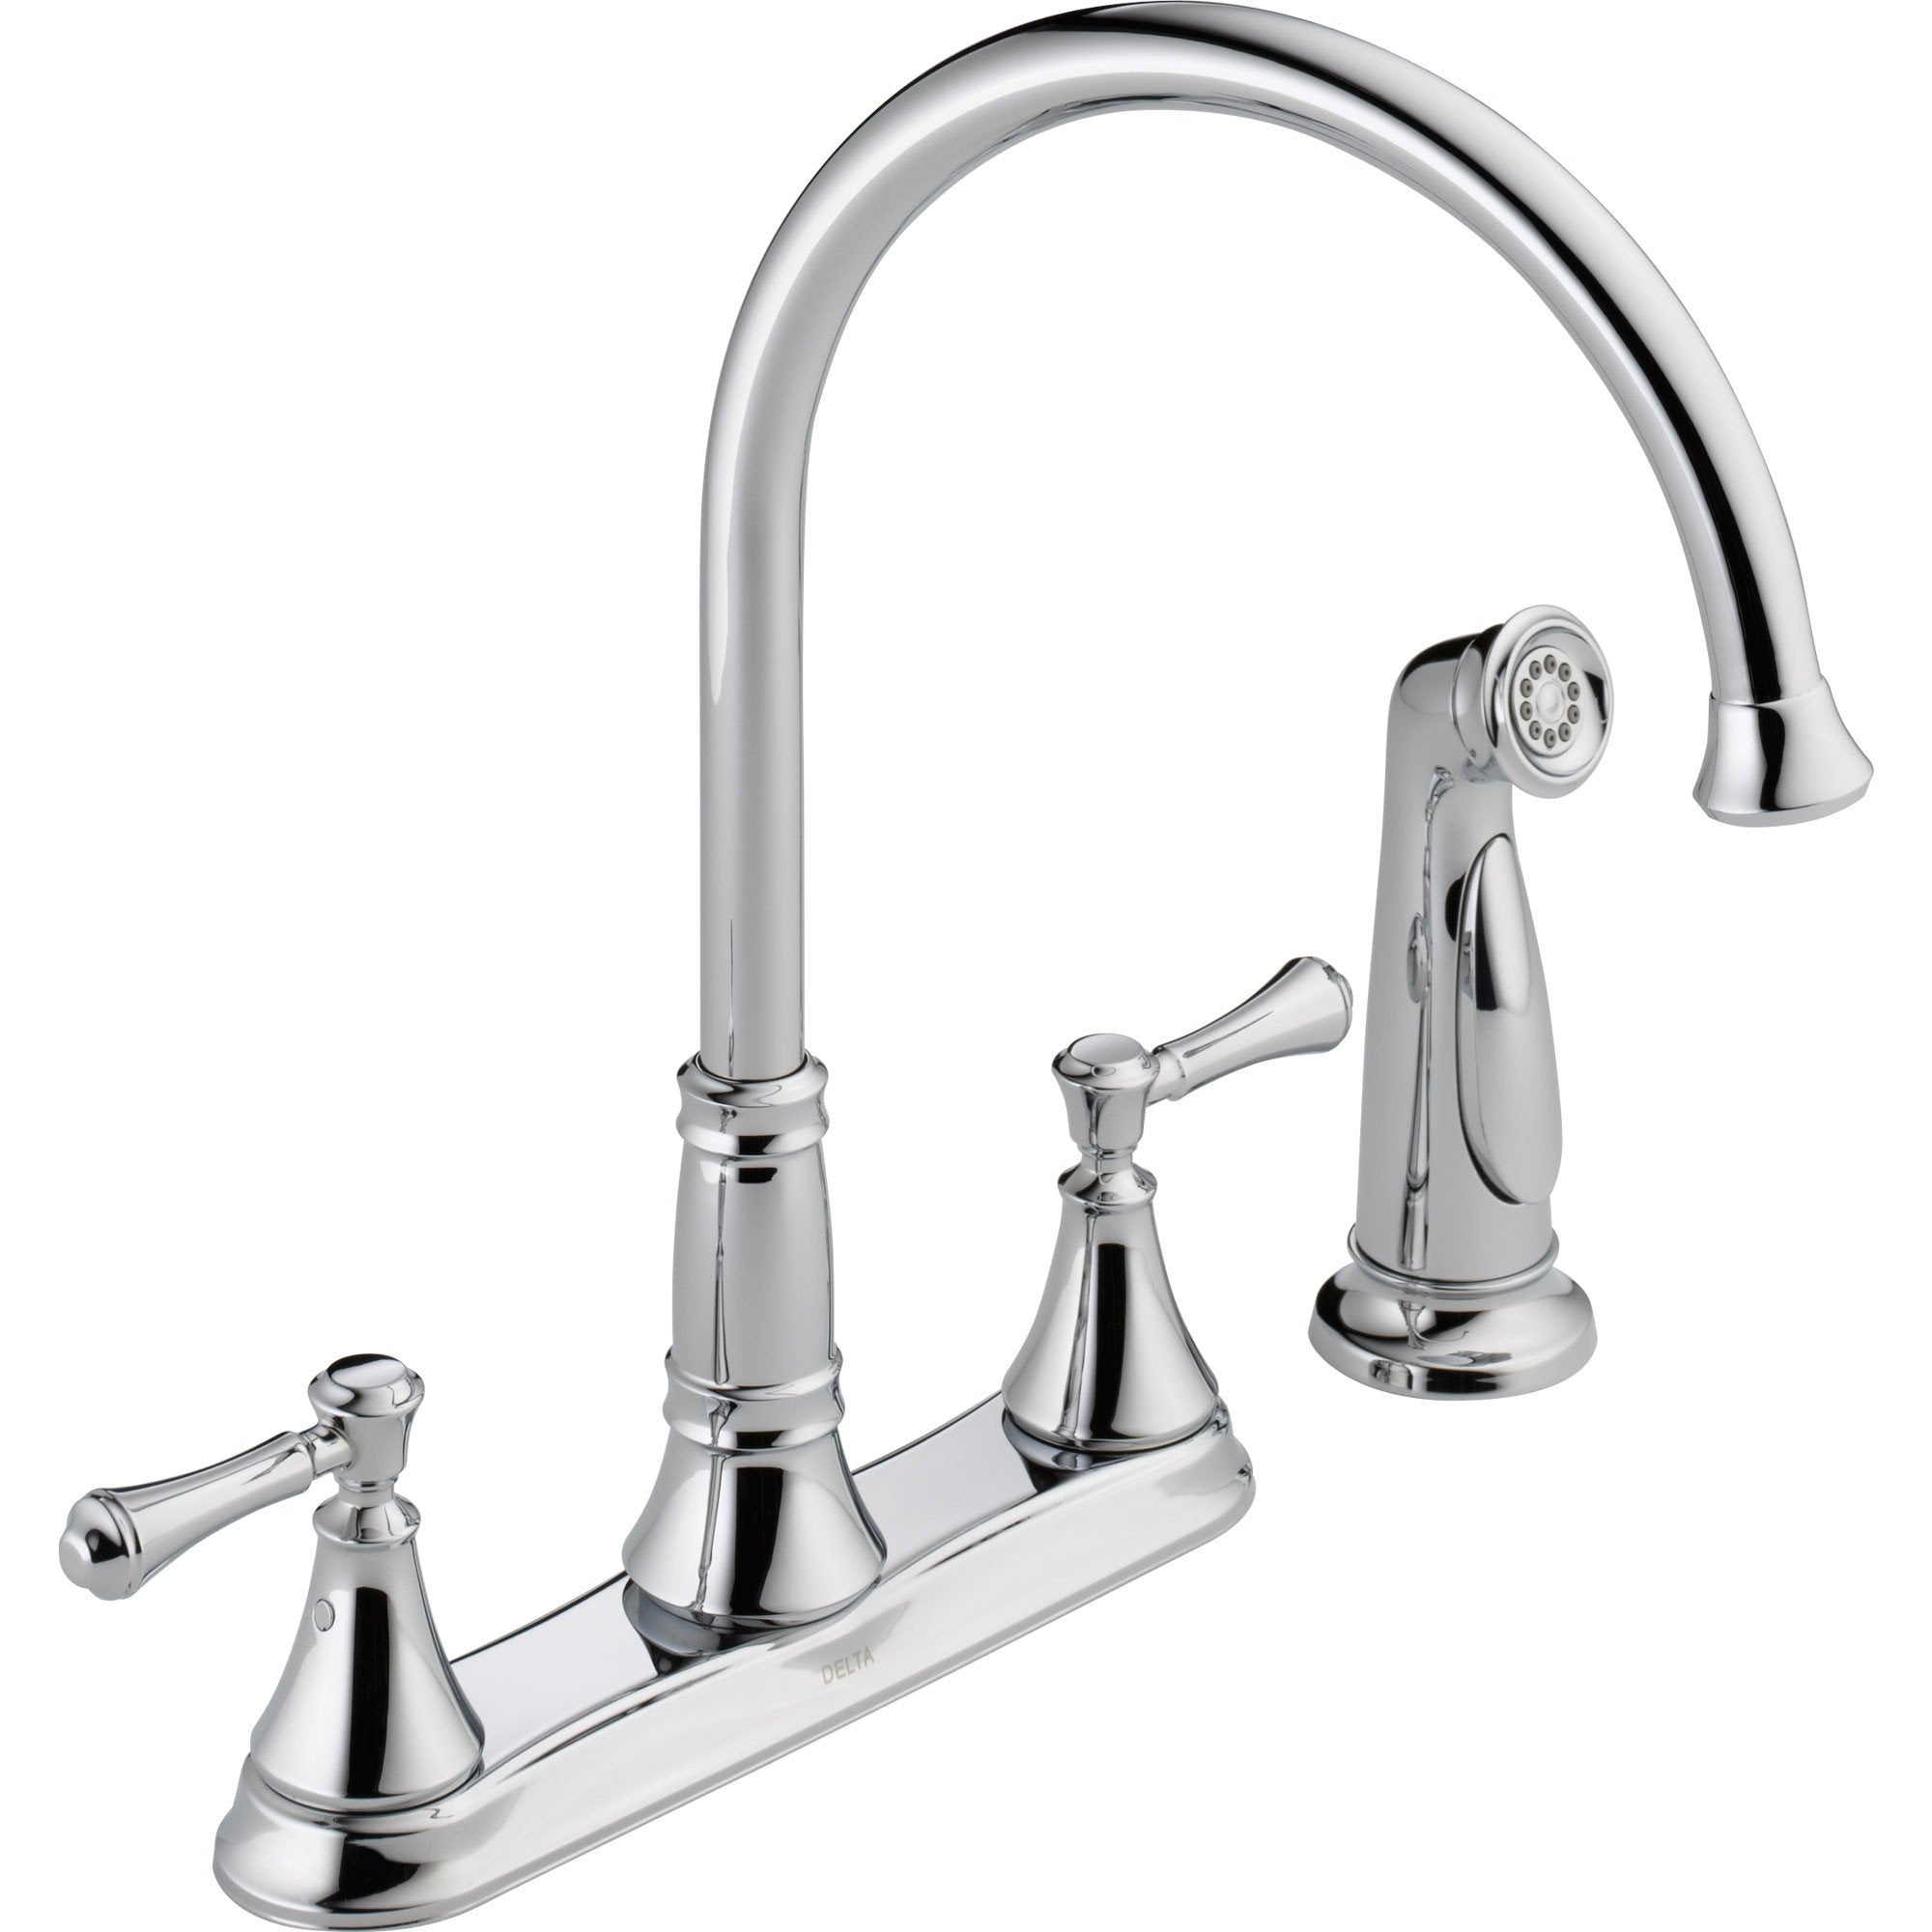 Delta Cassidy Gooseneck Chrome Kitchen Faucet with Side Sprayer